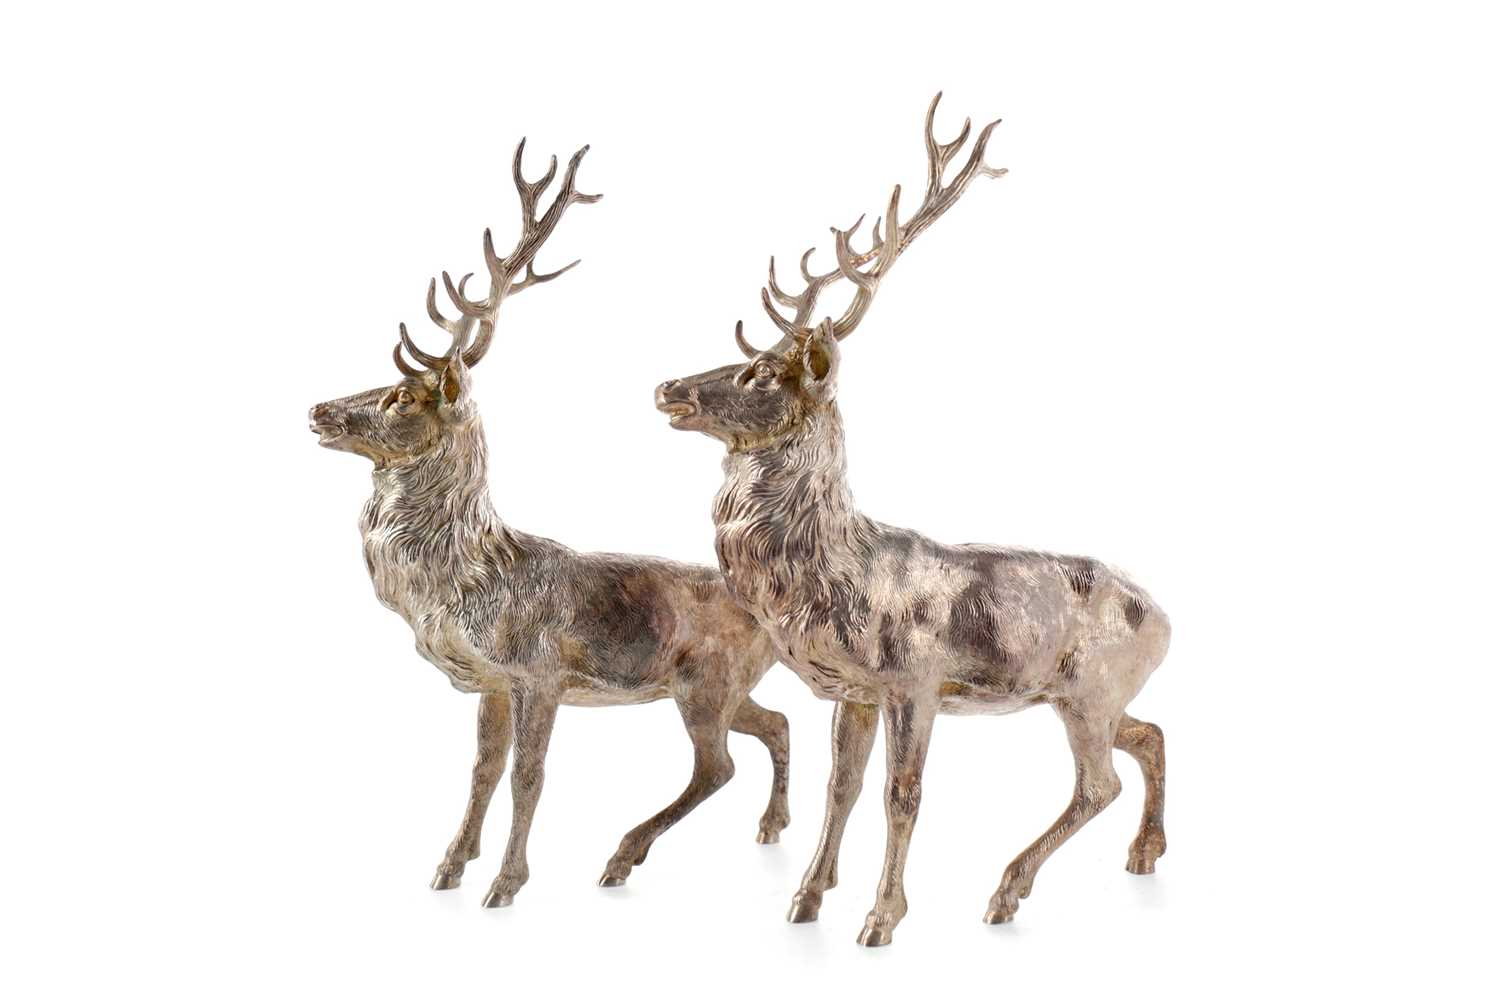 Lot 460 - A FINE PAIR OF CAST SILVER FIGURES OF ROYAL STAGS